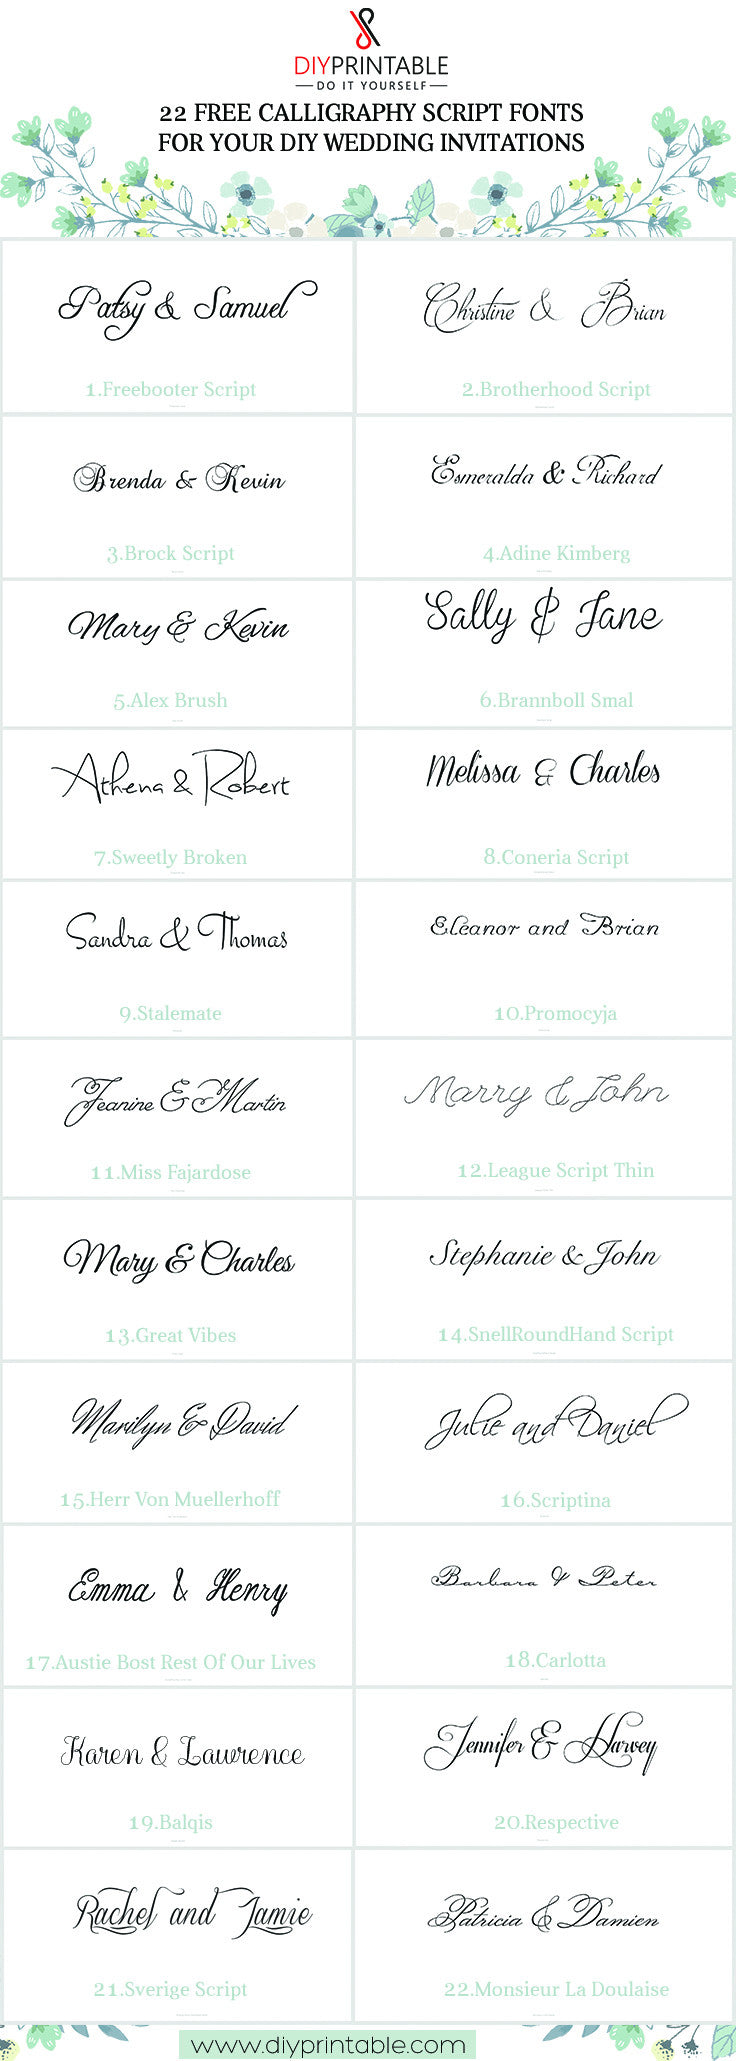 22 Free Calligraphy Script Fonts for Your DIY Wedding Invitations – Free Calligraphy Fonts for Wedding Invitations